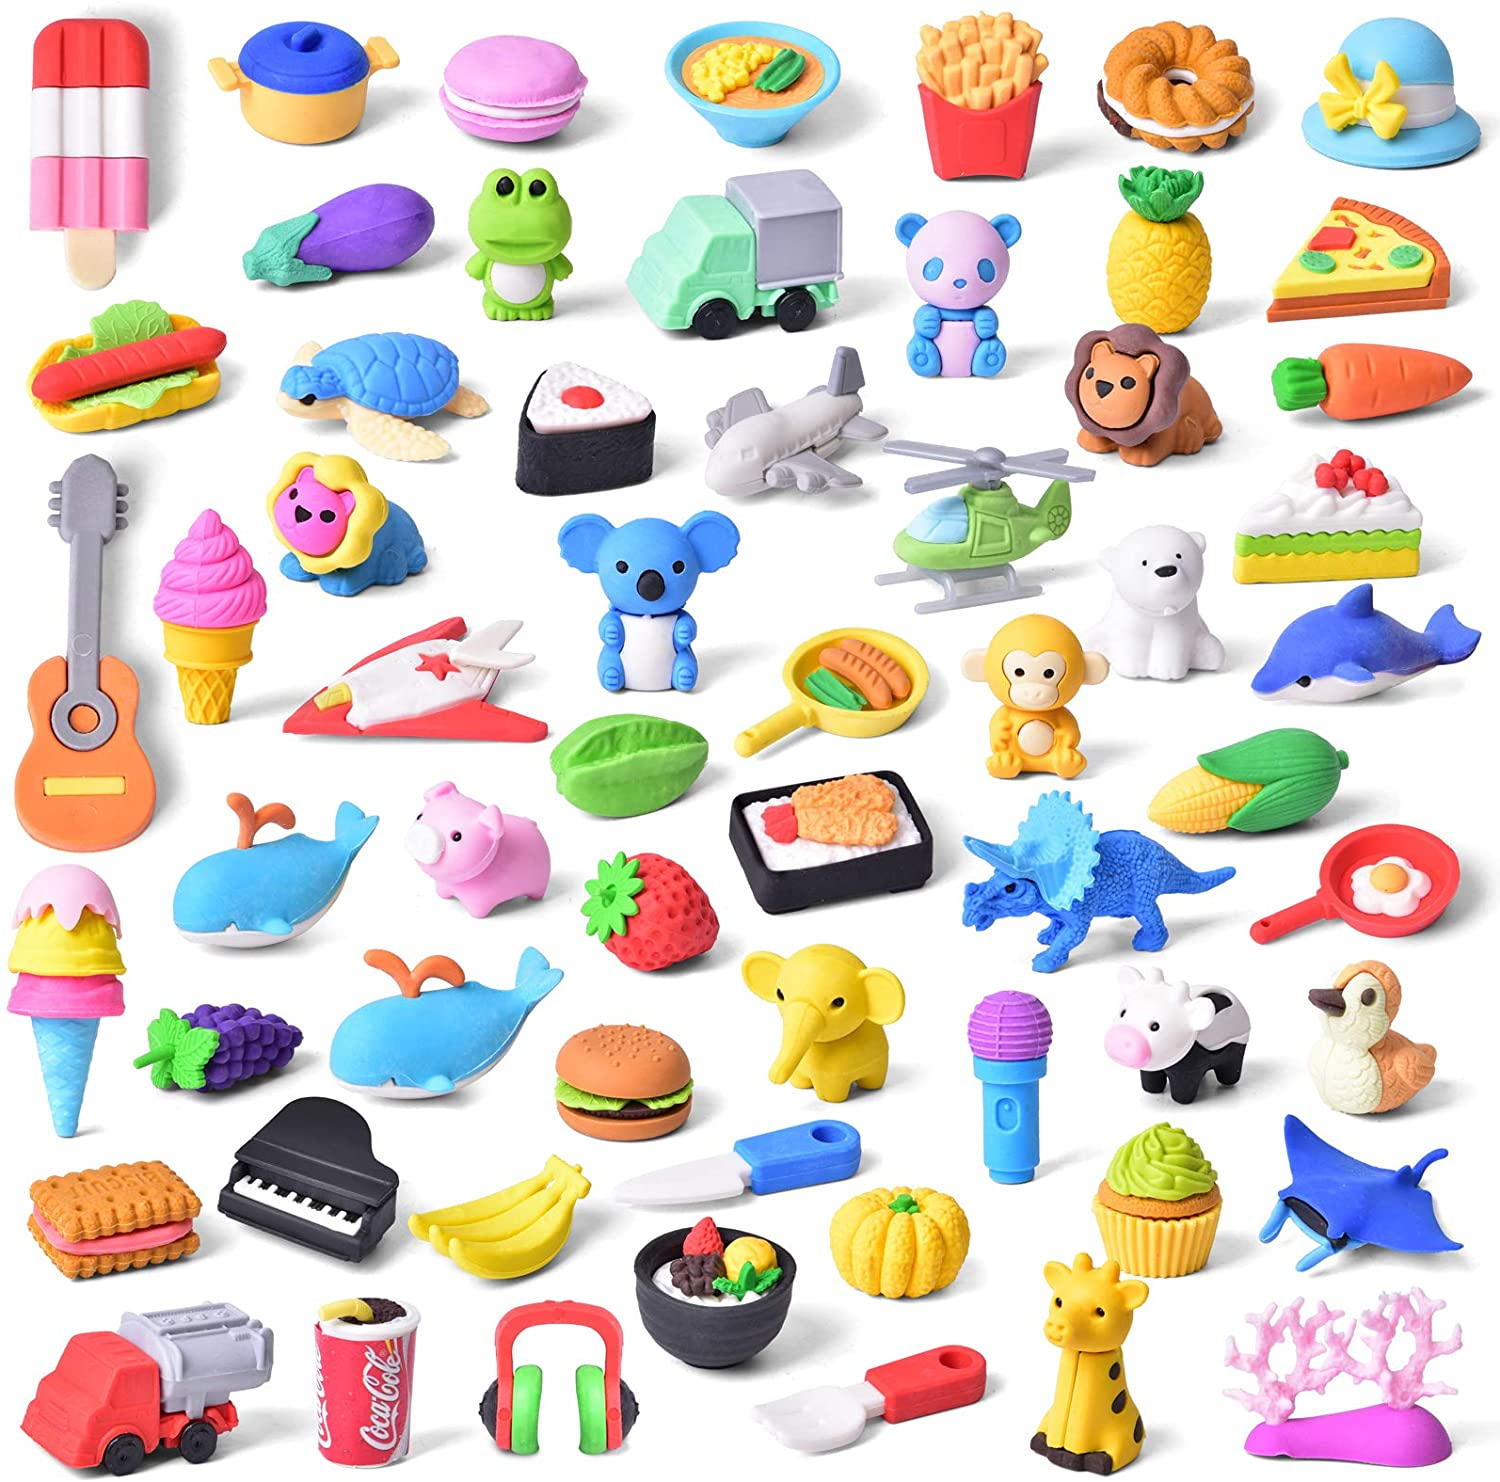 FUN LITTLE TOYS 60 PCs Pencil Erasers Toy Set for Kids Classroom Prizes, Gifts for Kids, Bulk Puzzle Erasers for Party Favors Games Carnivals Gifts School Rewards Novelty Toys Supplies Easter Egg Stuffers